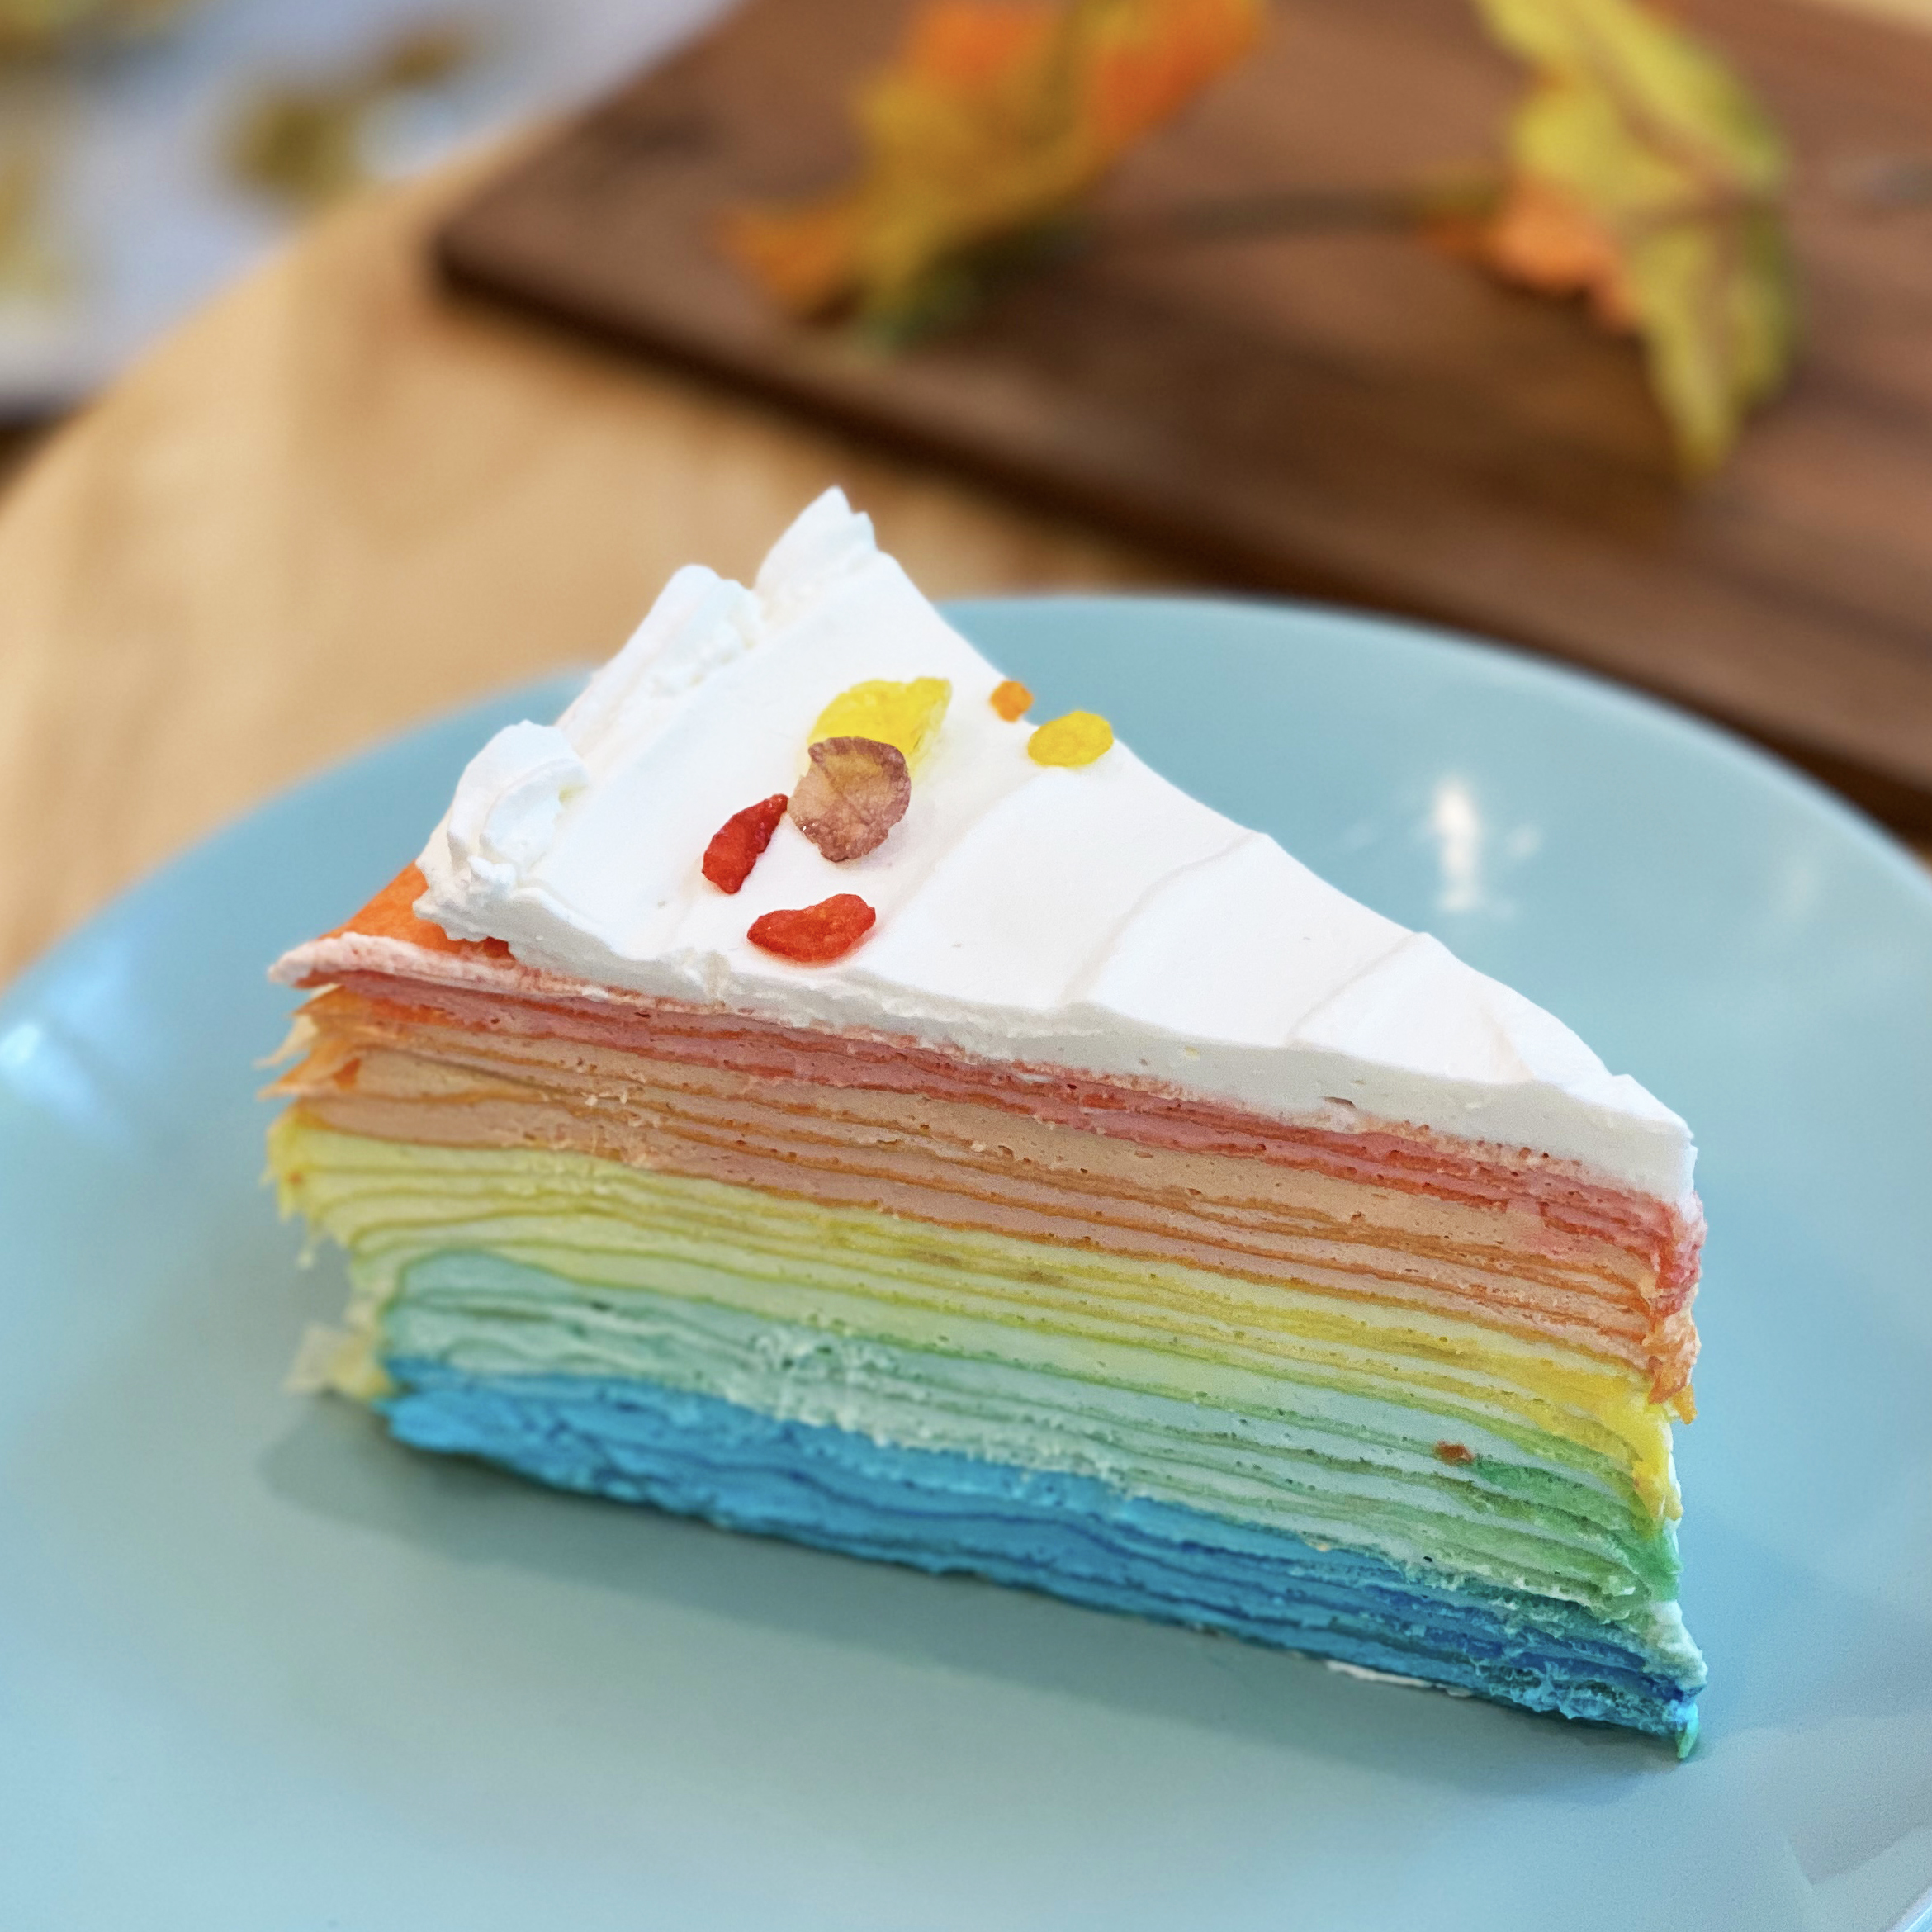 Treat yourself to a delicious, colorful rainbow crepe cake from this NYC bakery